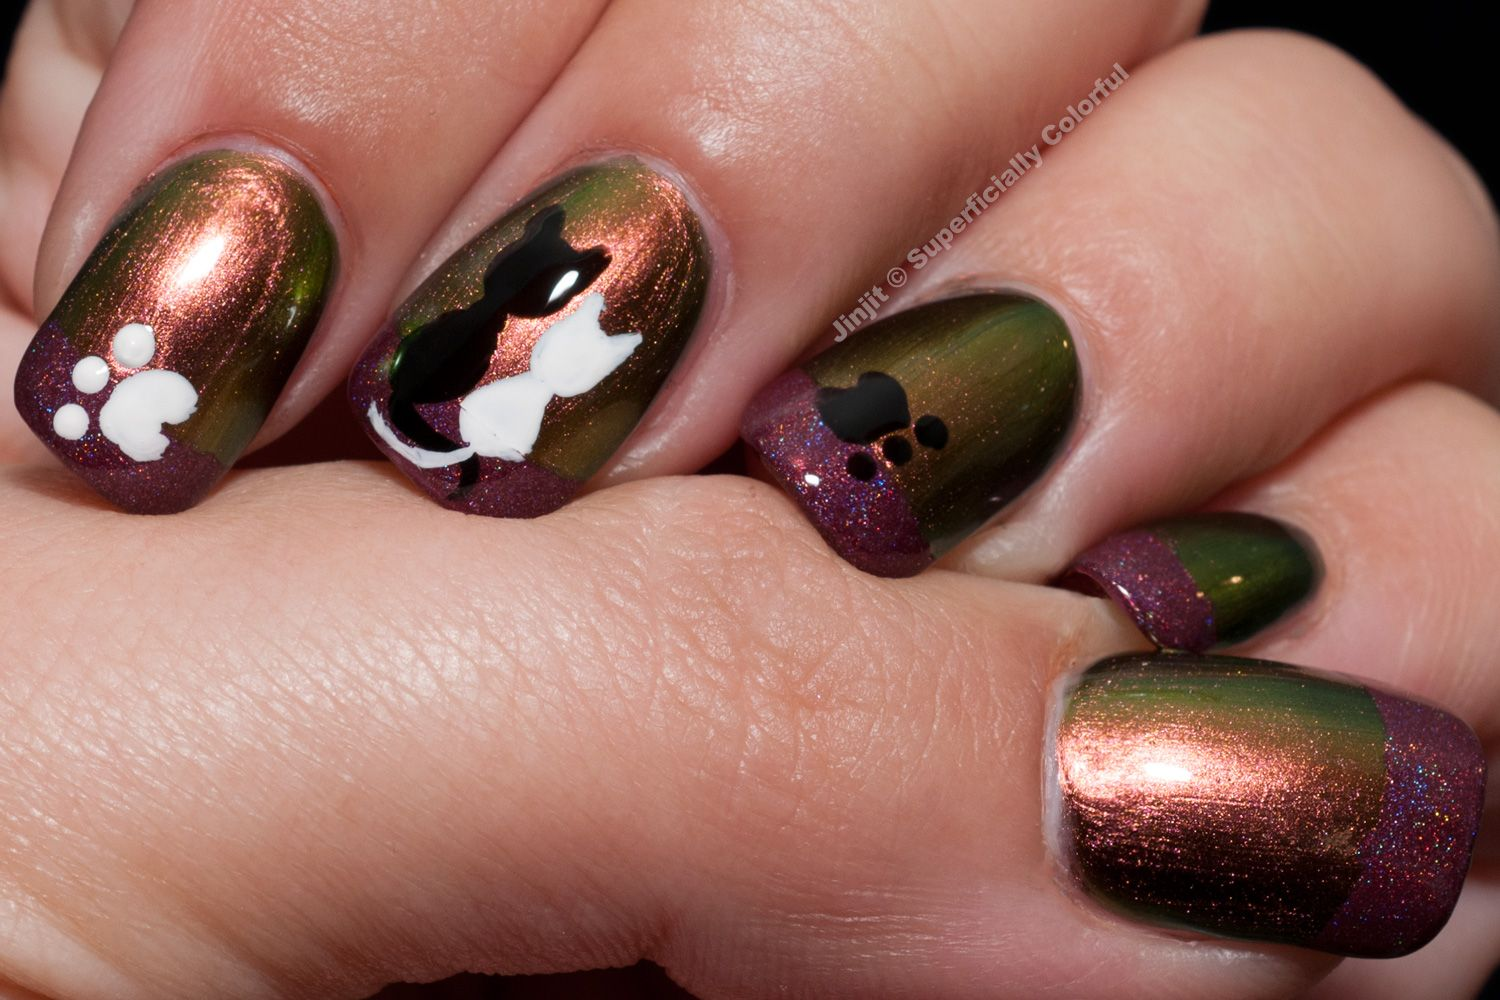 January Nail Art Theme Week: Follow a tutorial, day 3 - Kitties in ...